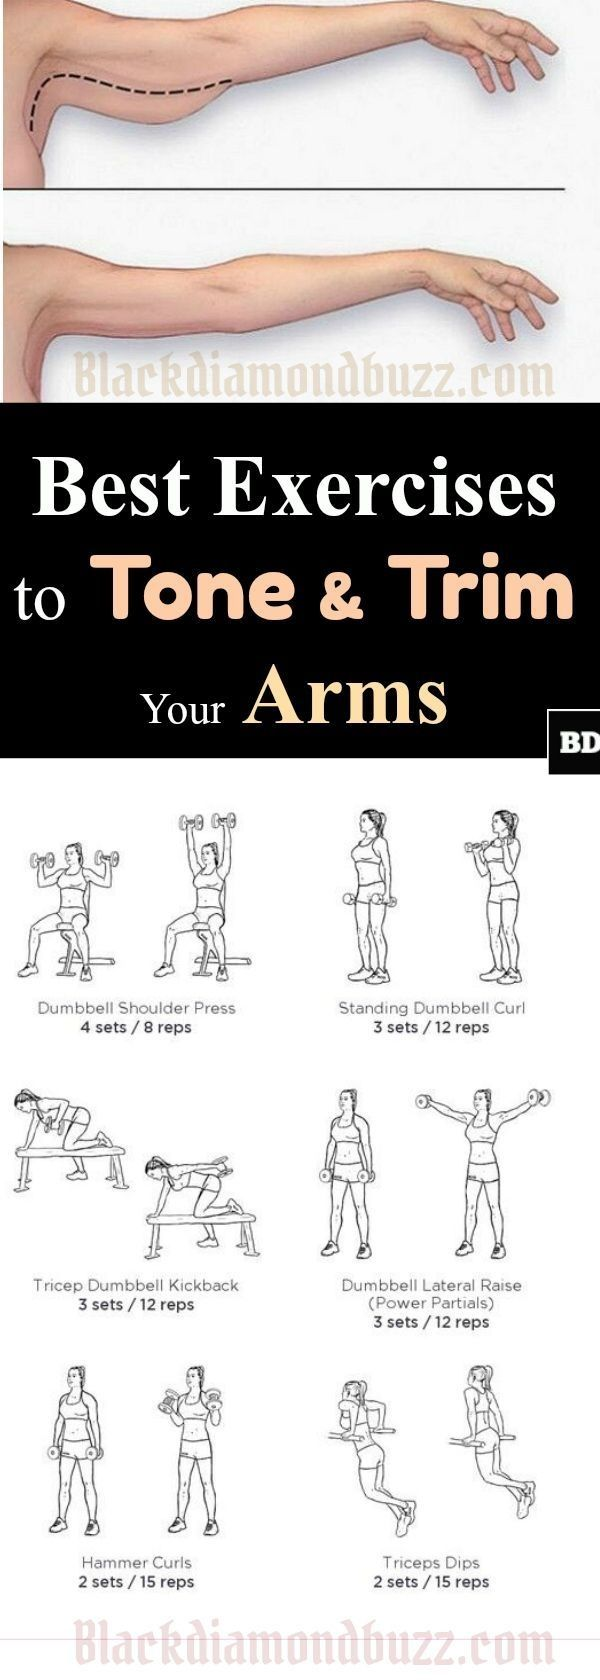 Best Exercises to Tone & Trim Your Arms: Best workouts to get rid of flabby arms for women and men Arm workout women with weights by bleu. by eva.ritz